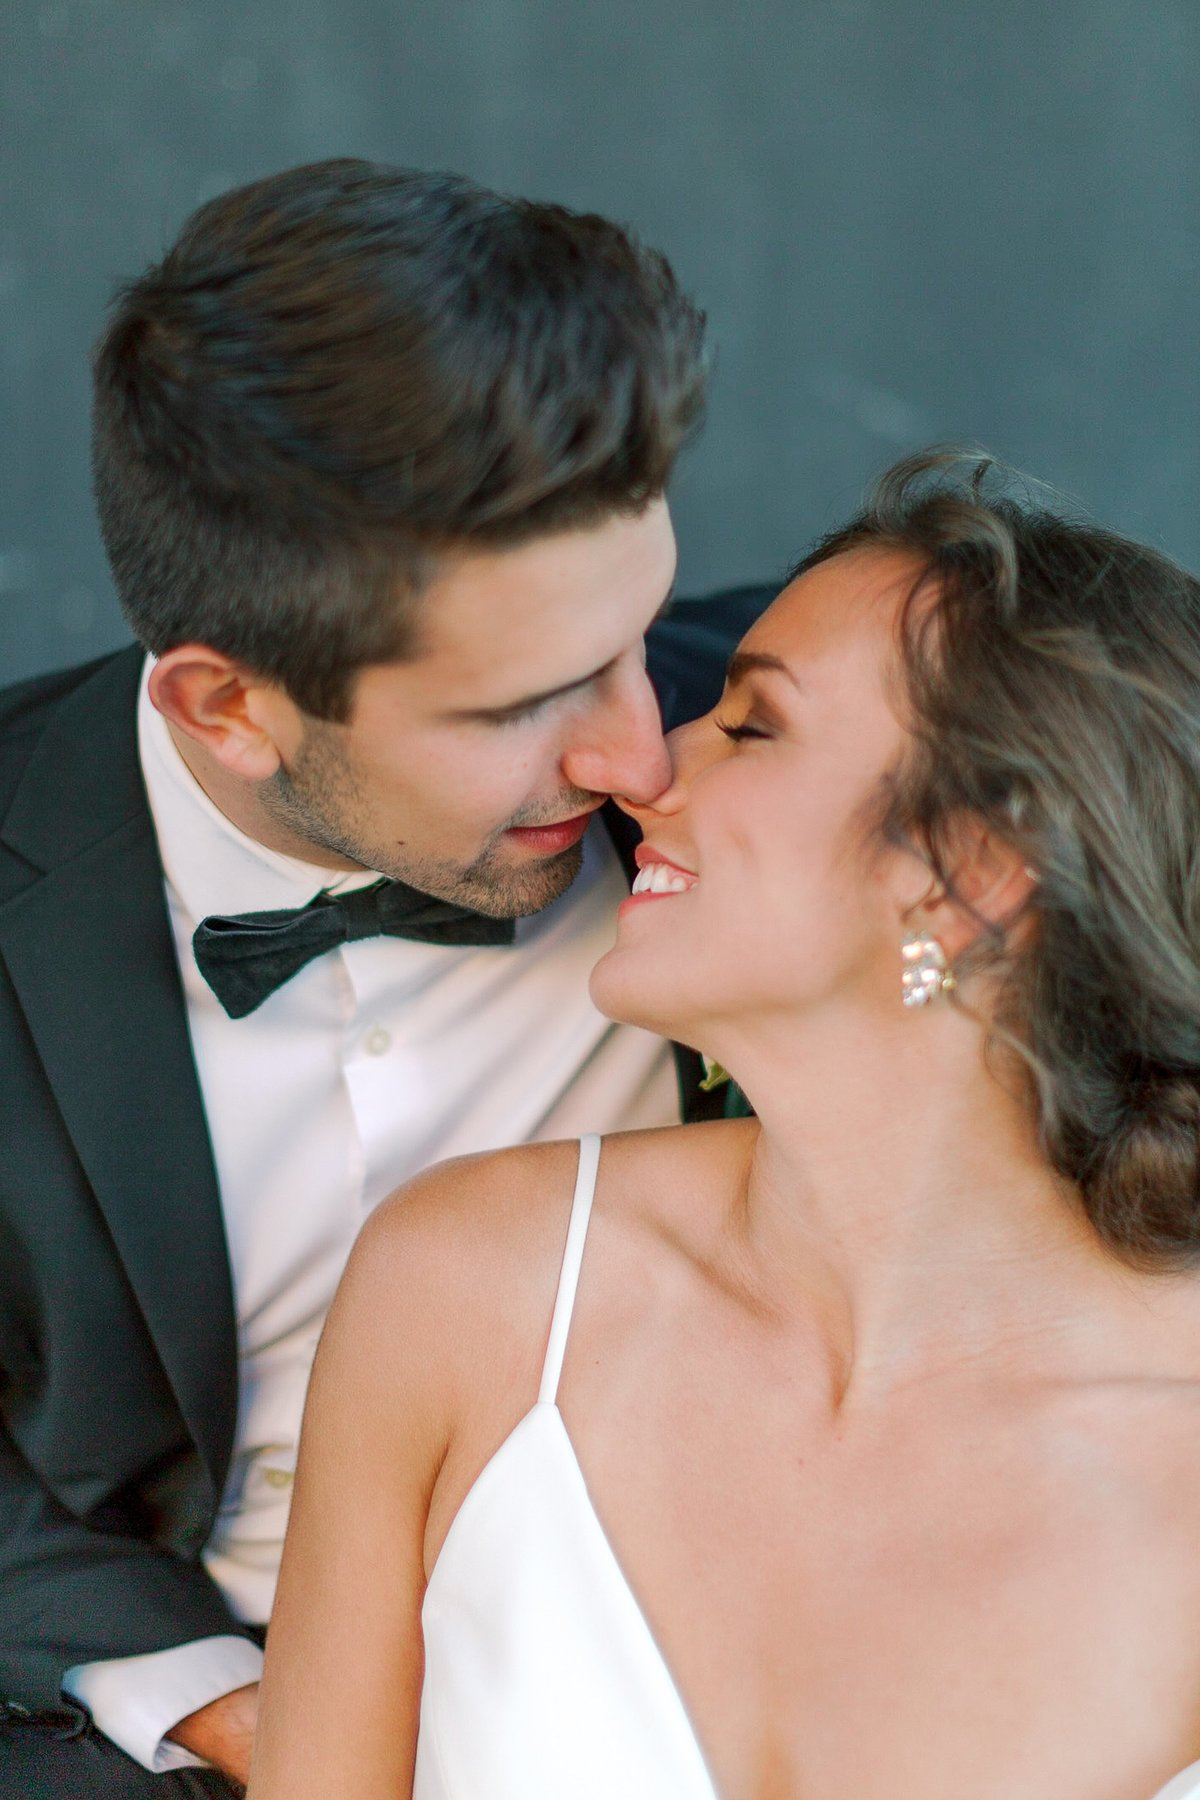 20191020 Modern Elegance Wedding Styled Shoot at Three Steves Winery Livermore_Bethany Picone Photography - 0400_WEB